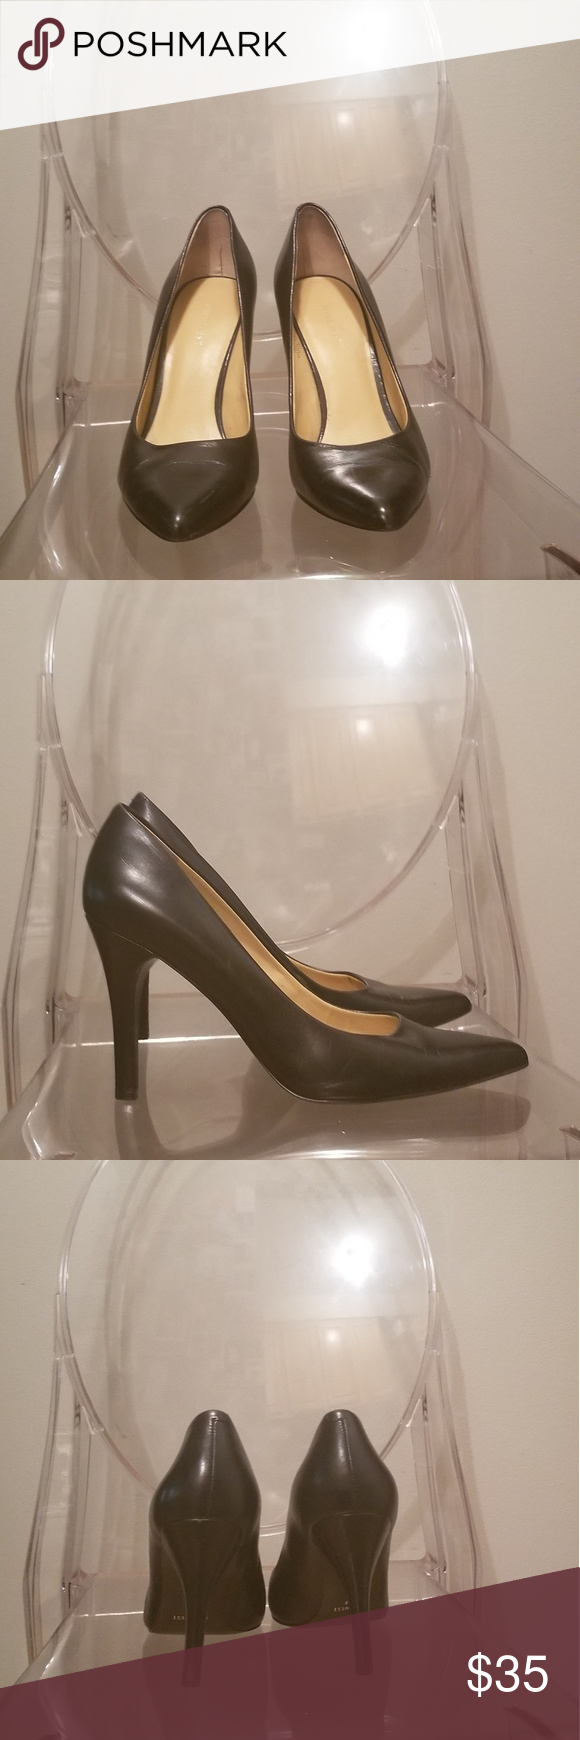 Like new Nine West Quintrell pumps in My Posh Picks